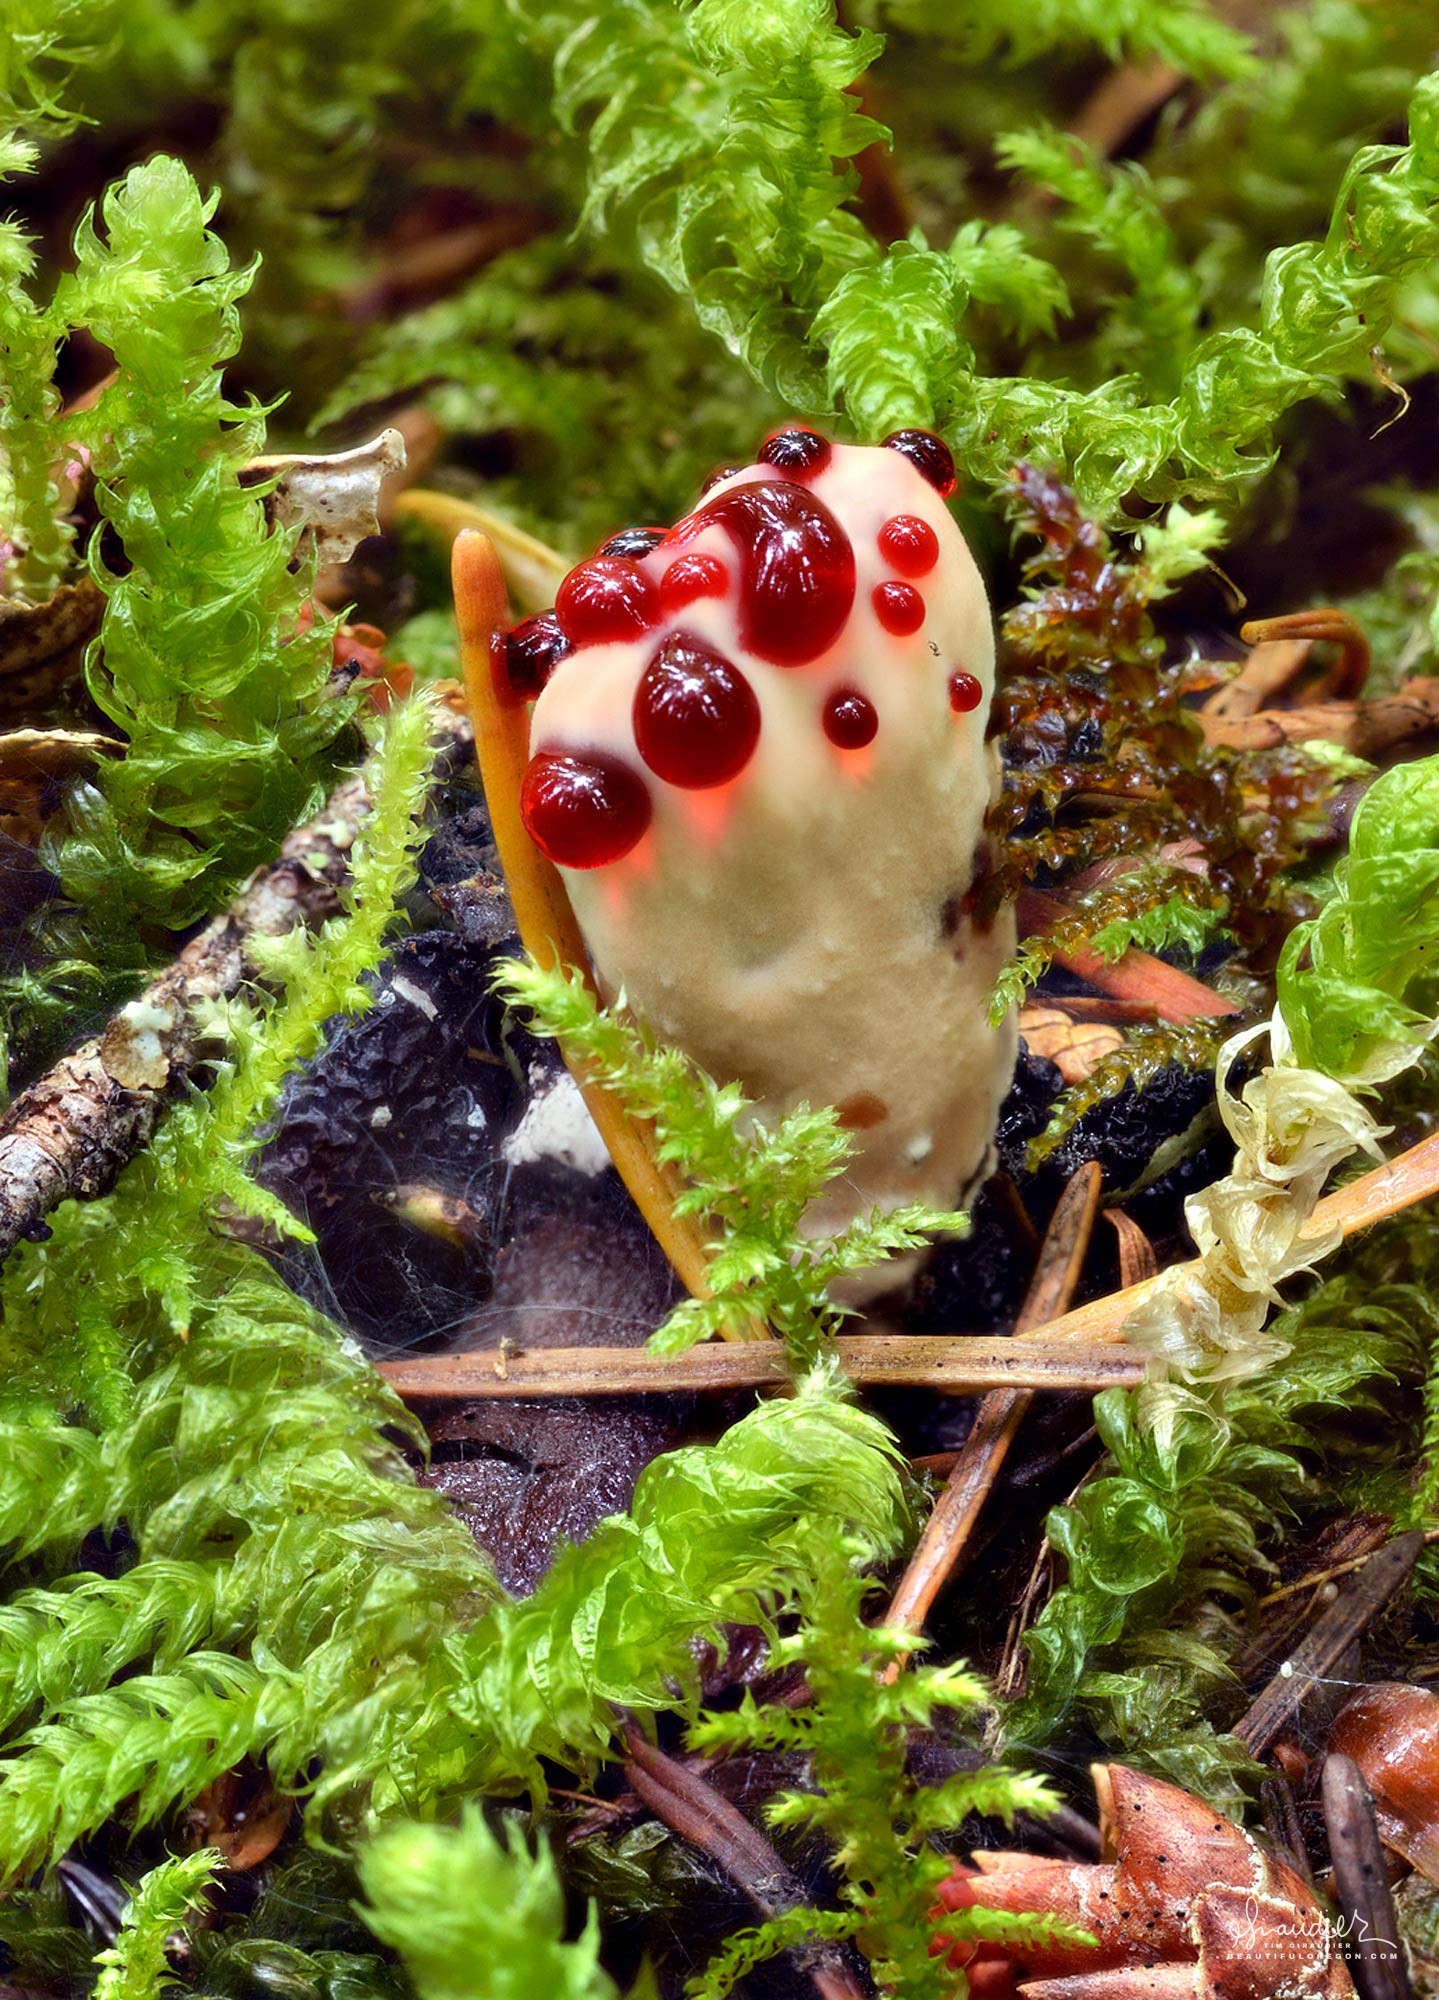 A Bleeding Hydnellum (Hydnellum peckii) exudes its characteristic red liquid. This fungus is prized for the natural dyes it produces. Willamette National Forest, Oregon Cascades.